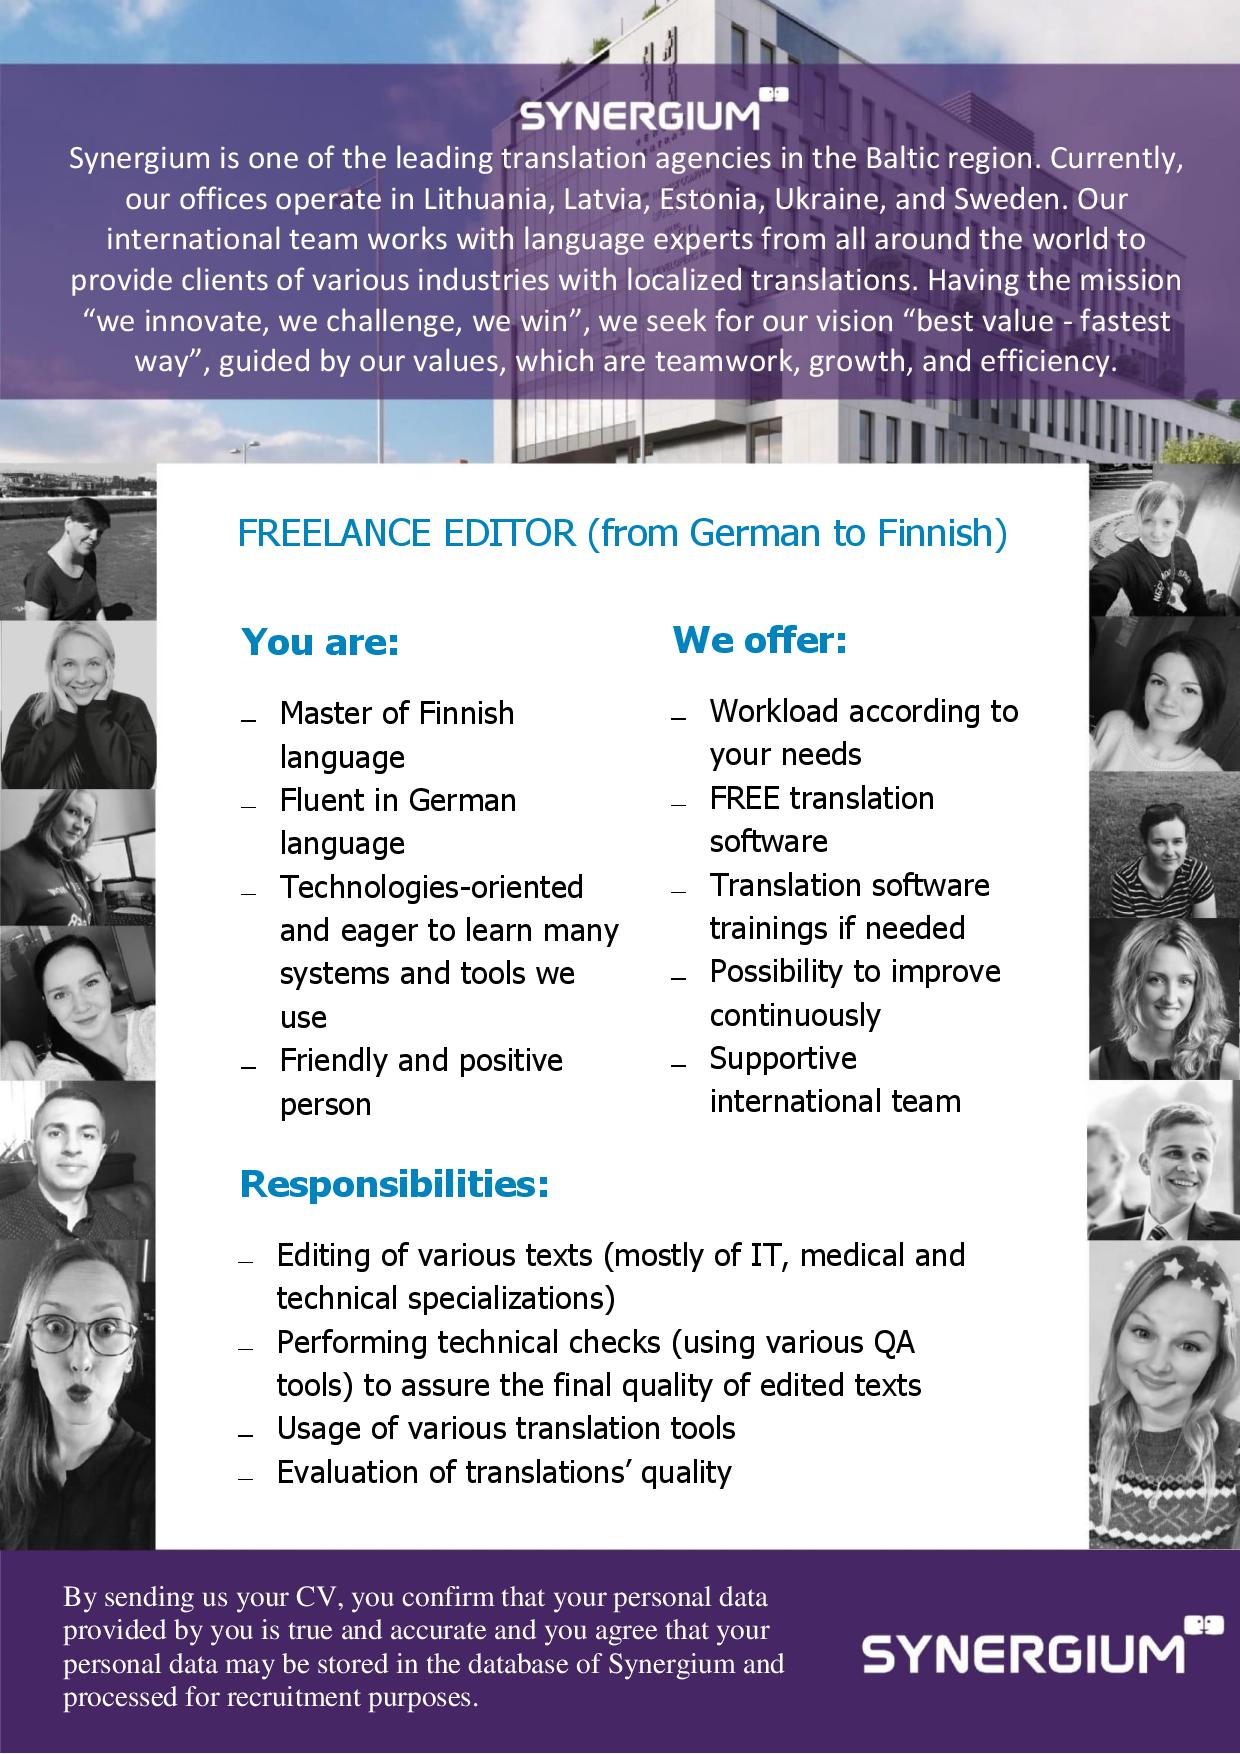 freelance editor from german to finnish job advertisement synergium